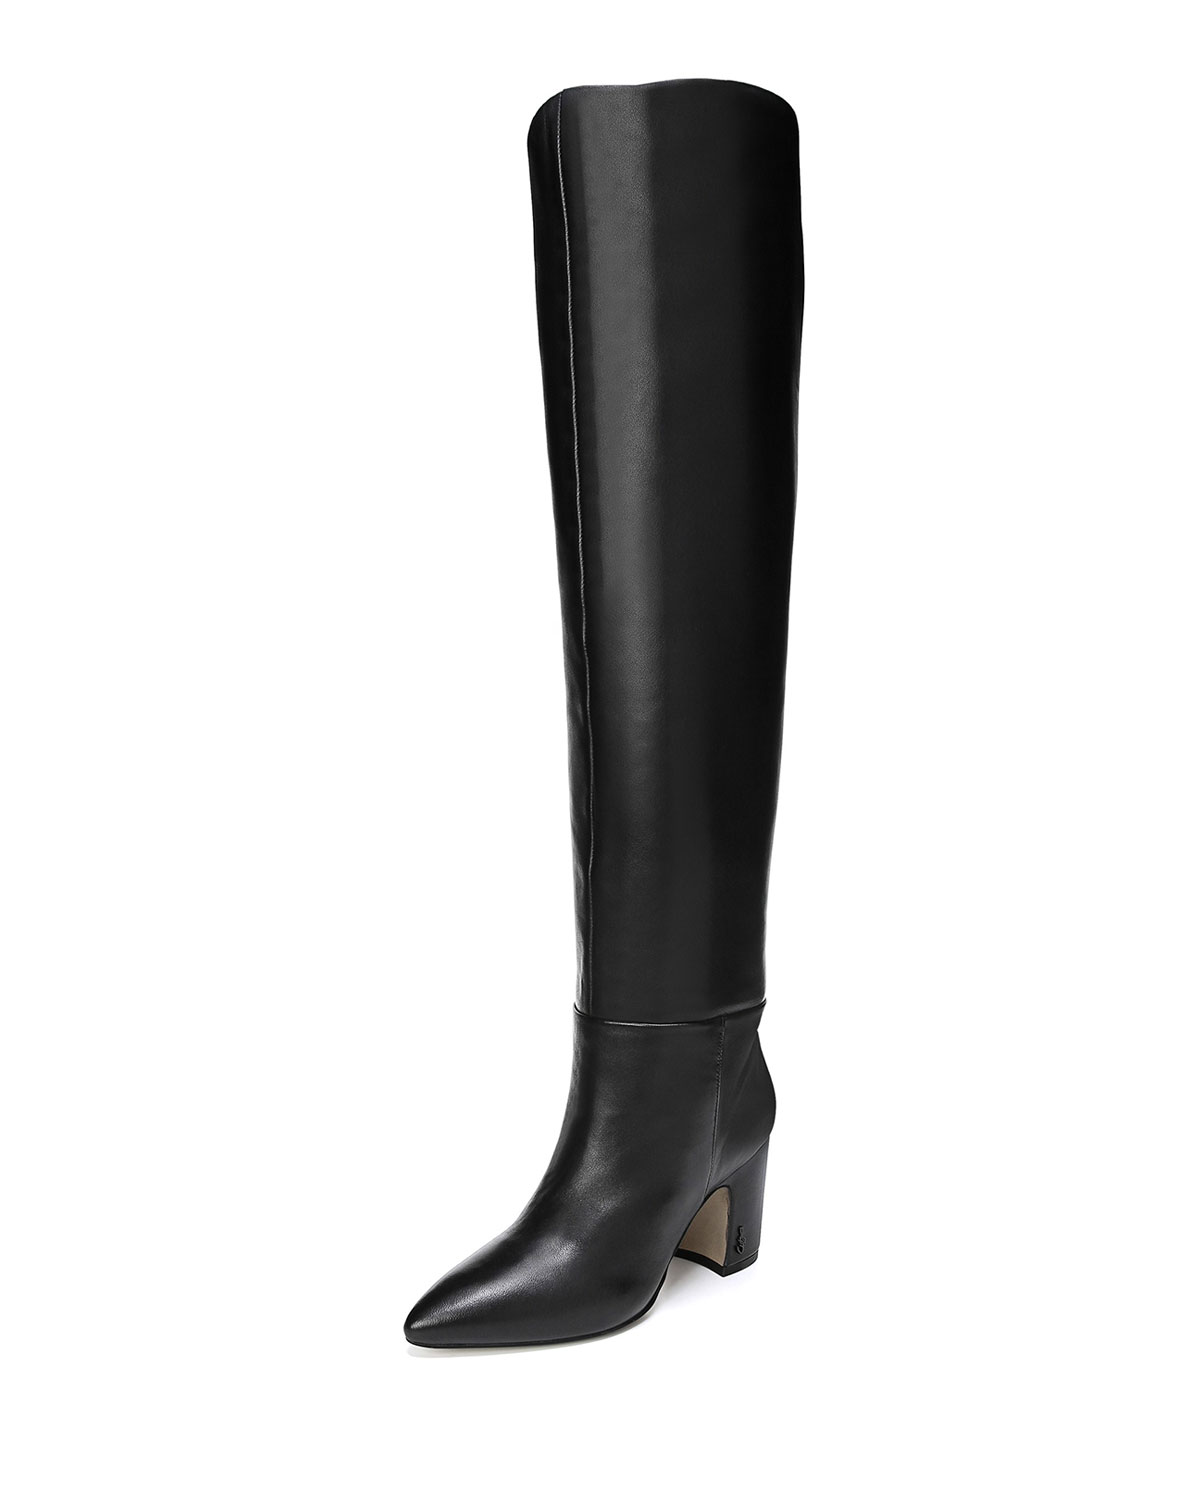 1057ec98e Sam Edelman Hutton Leather Over-The-Knee Boots